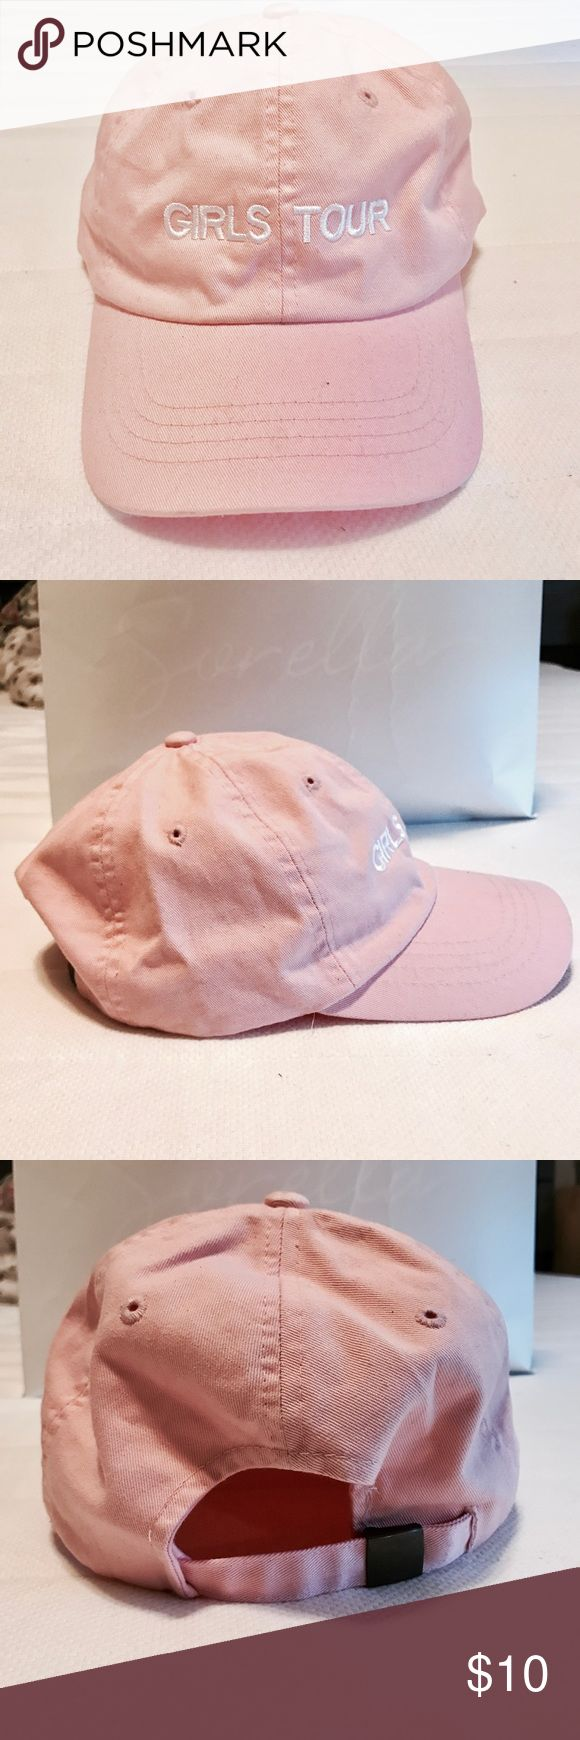 Girls Tour Baseball Hat From Sorella Boutique where Kylie Jenner shops. Has small stain from makeup. Brandy Melville Accessories Hats